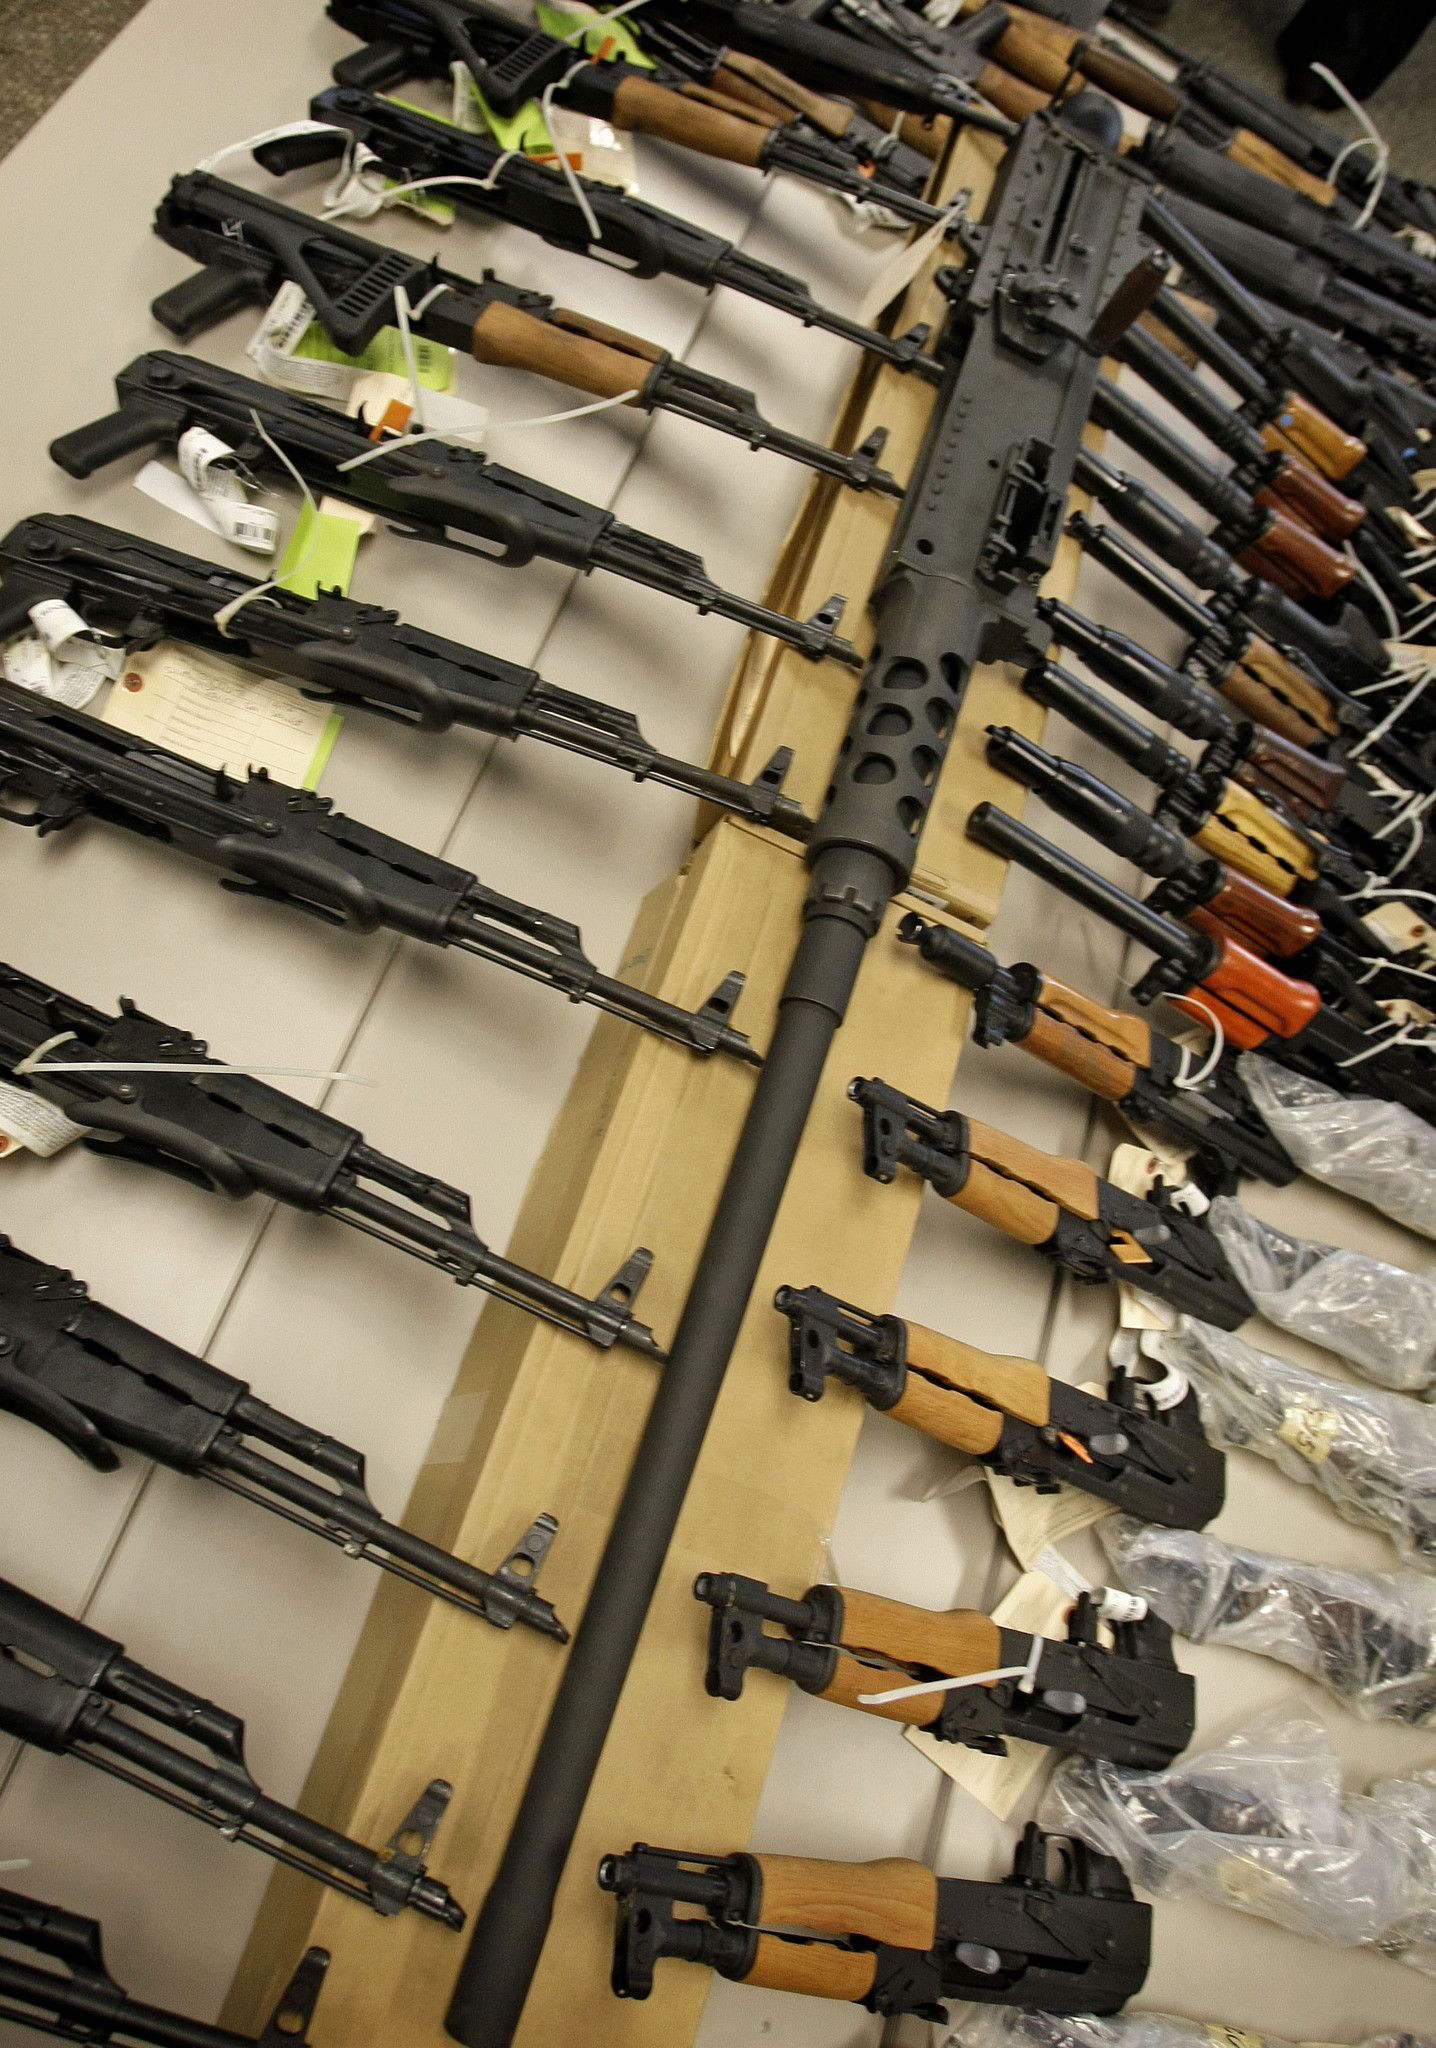 A cache of seized weapons displayed at a news conference in Phoenix. (Matt York / Associated Press)